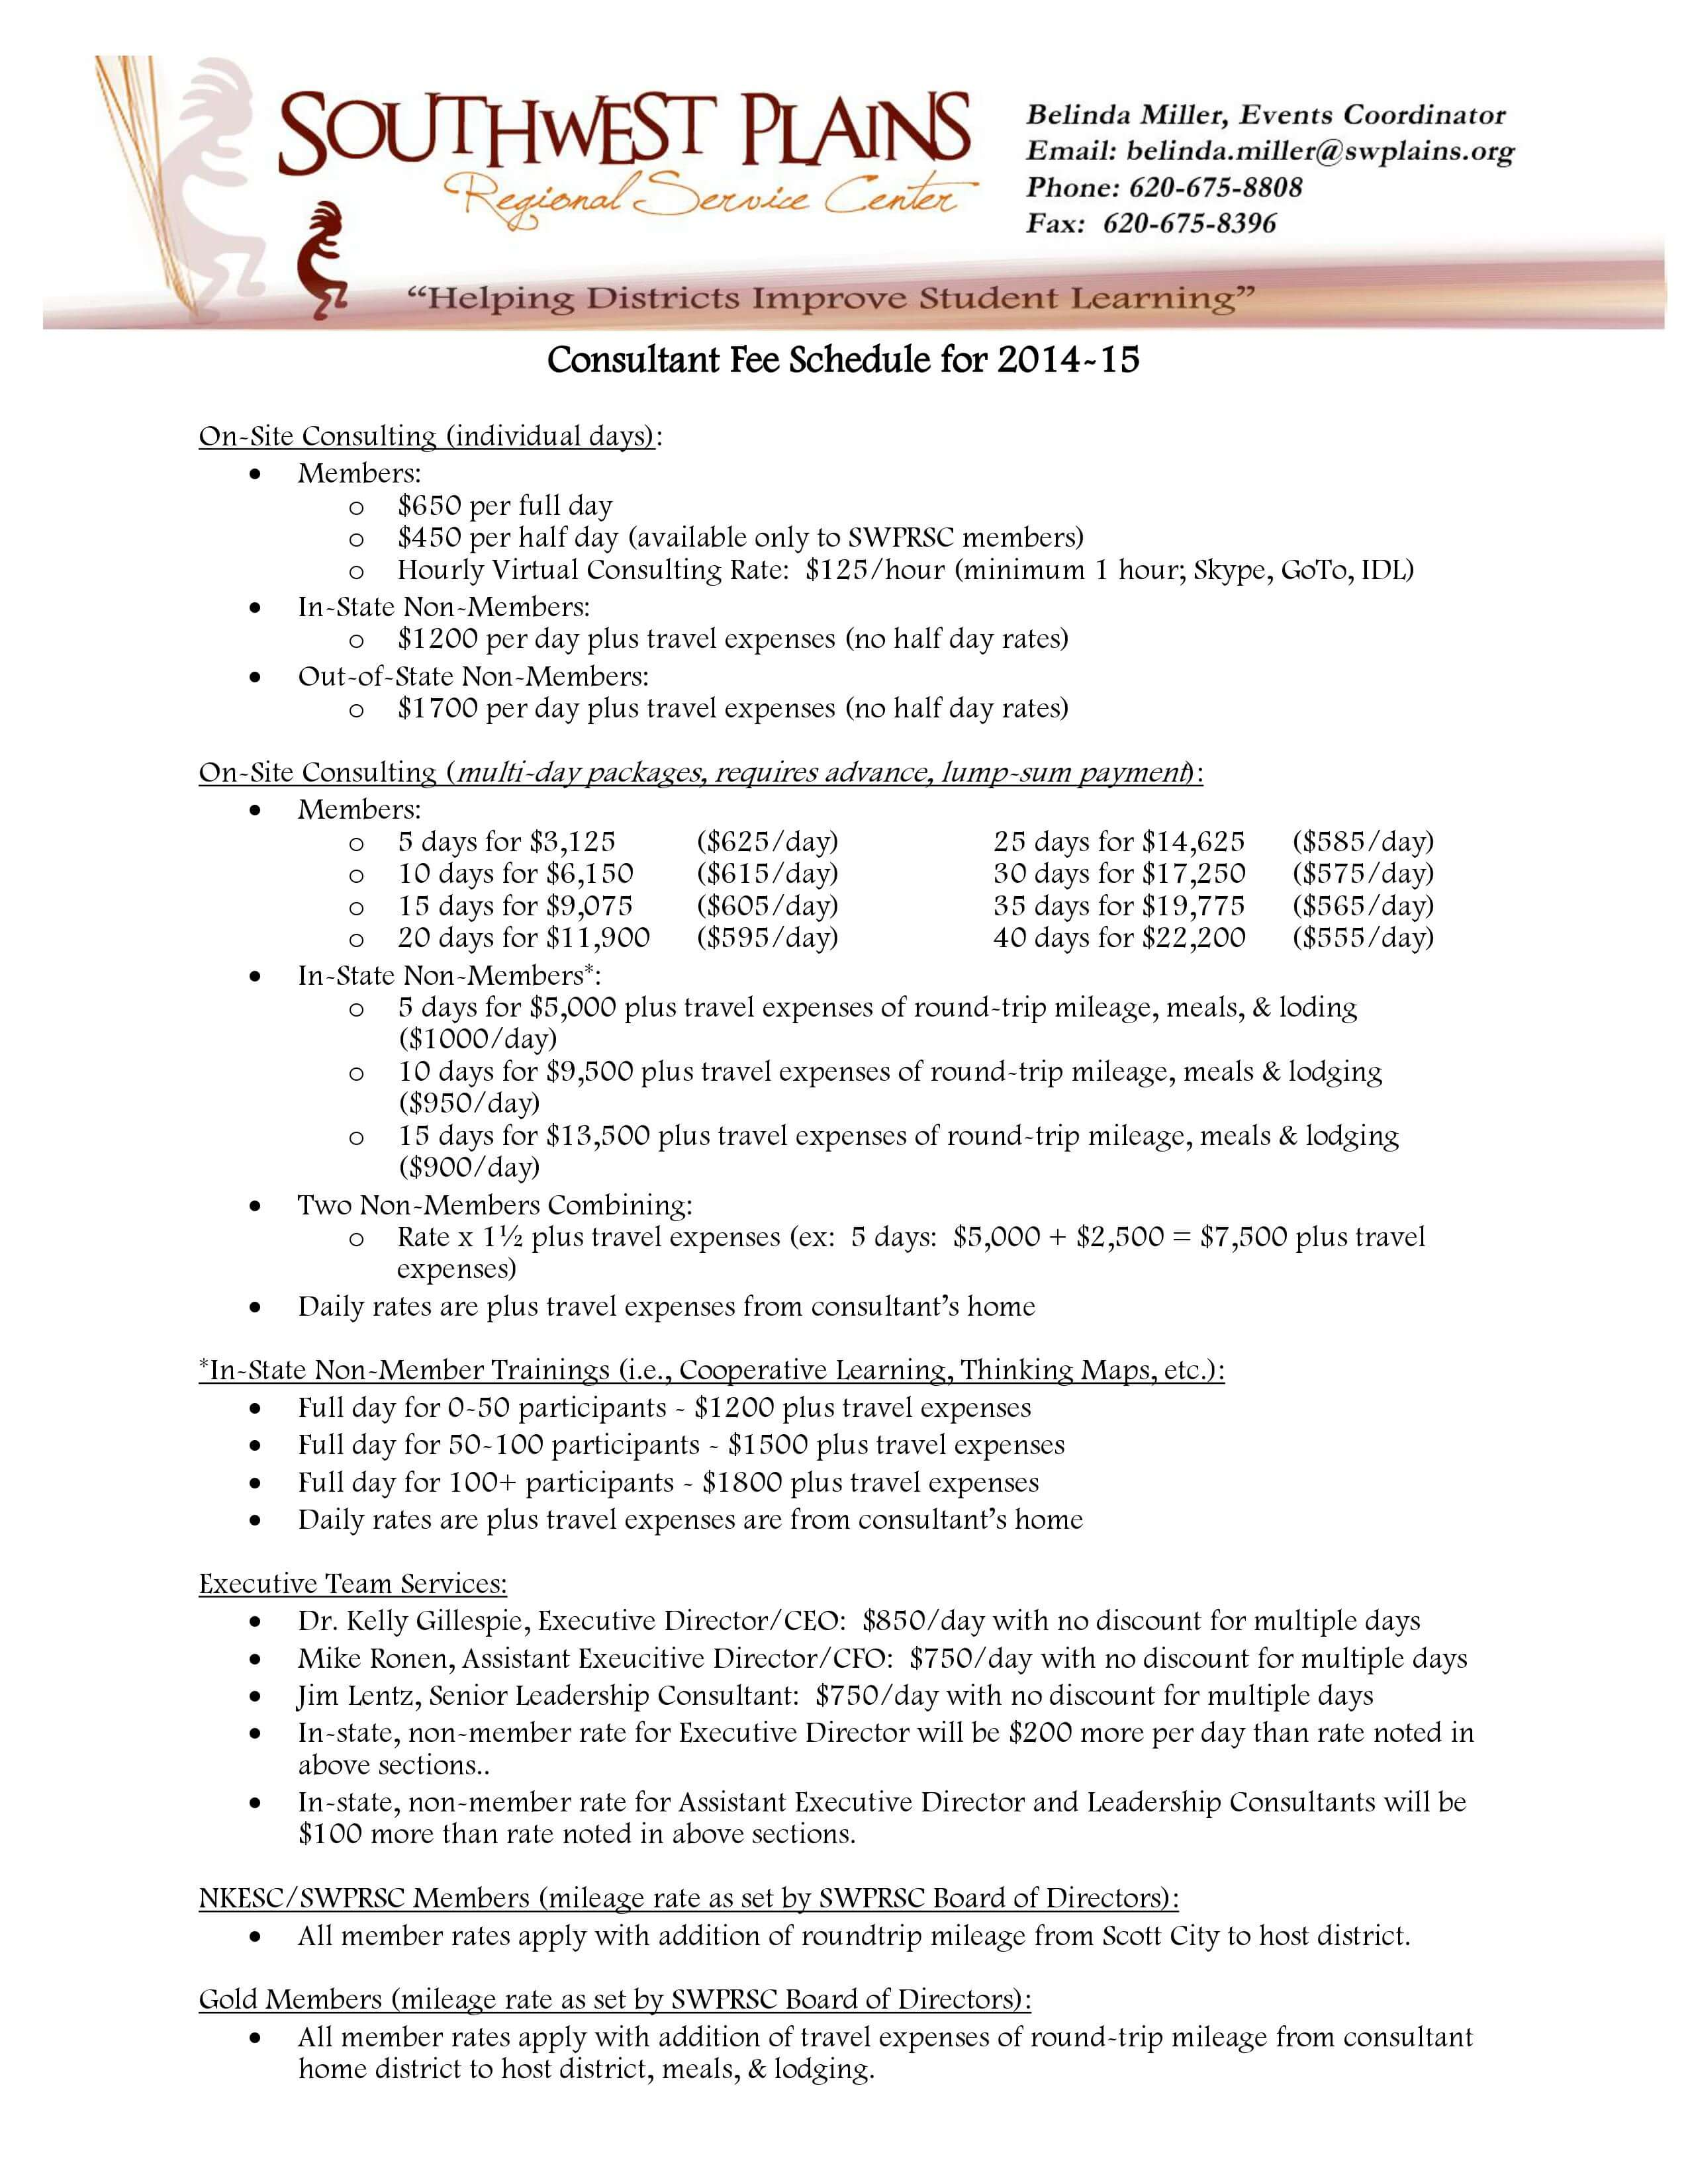 Consultant Fee Schedule Template